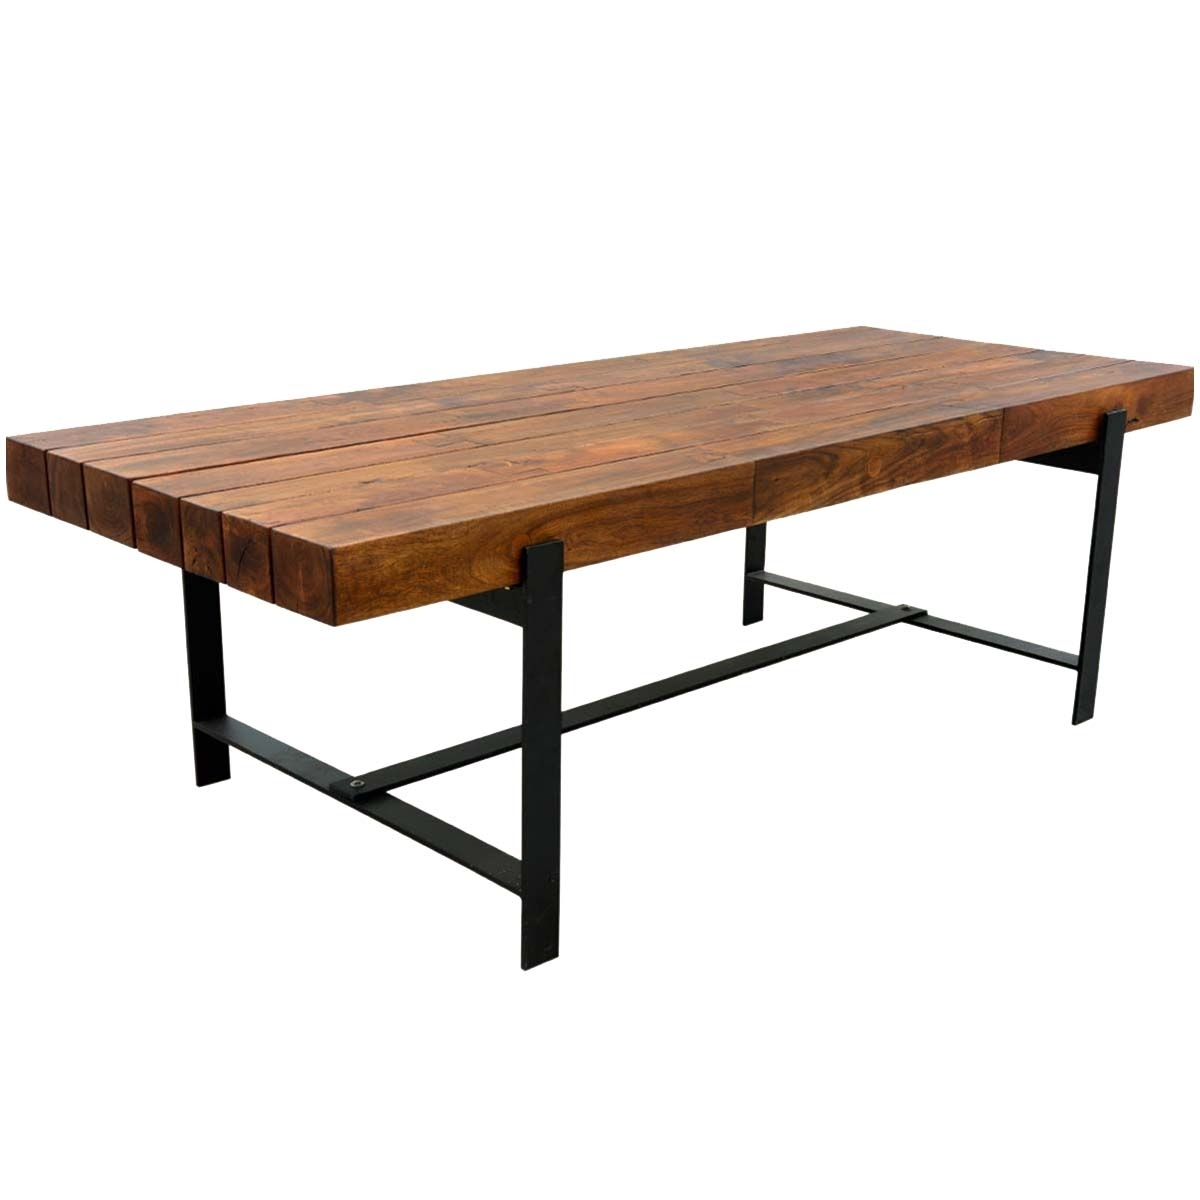 "Industrial Iron & Acacia Wood 94"" Large Rustic Dining Table Throughout Recent Iron And Wood Dining Tables (View 8 of 20)"